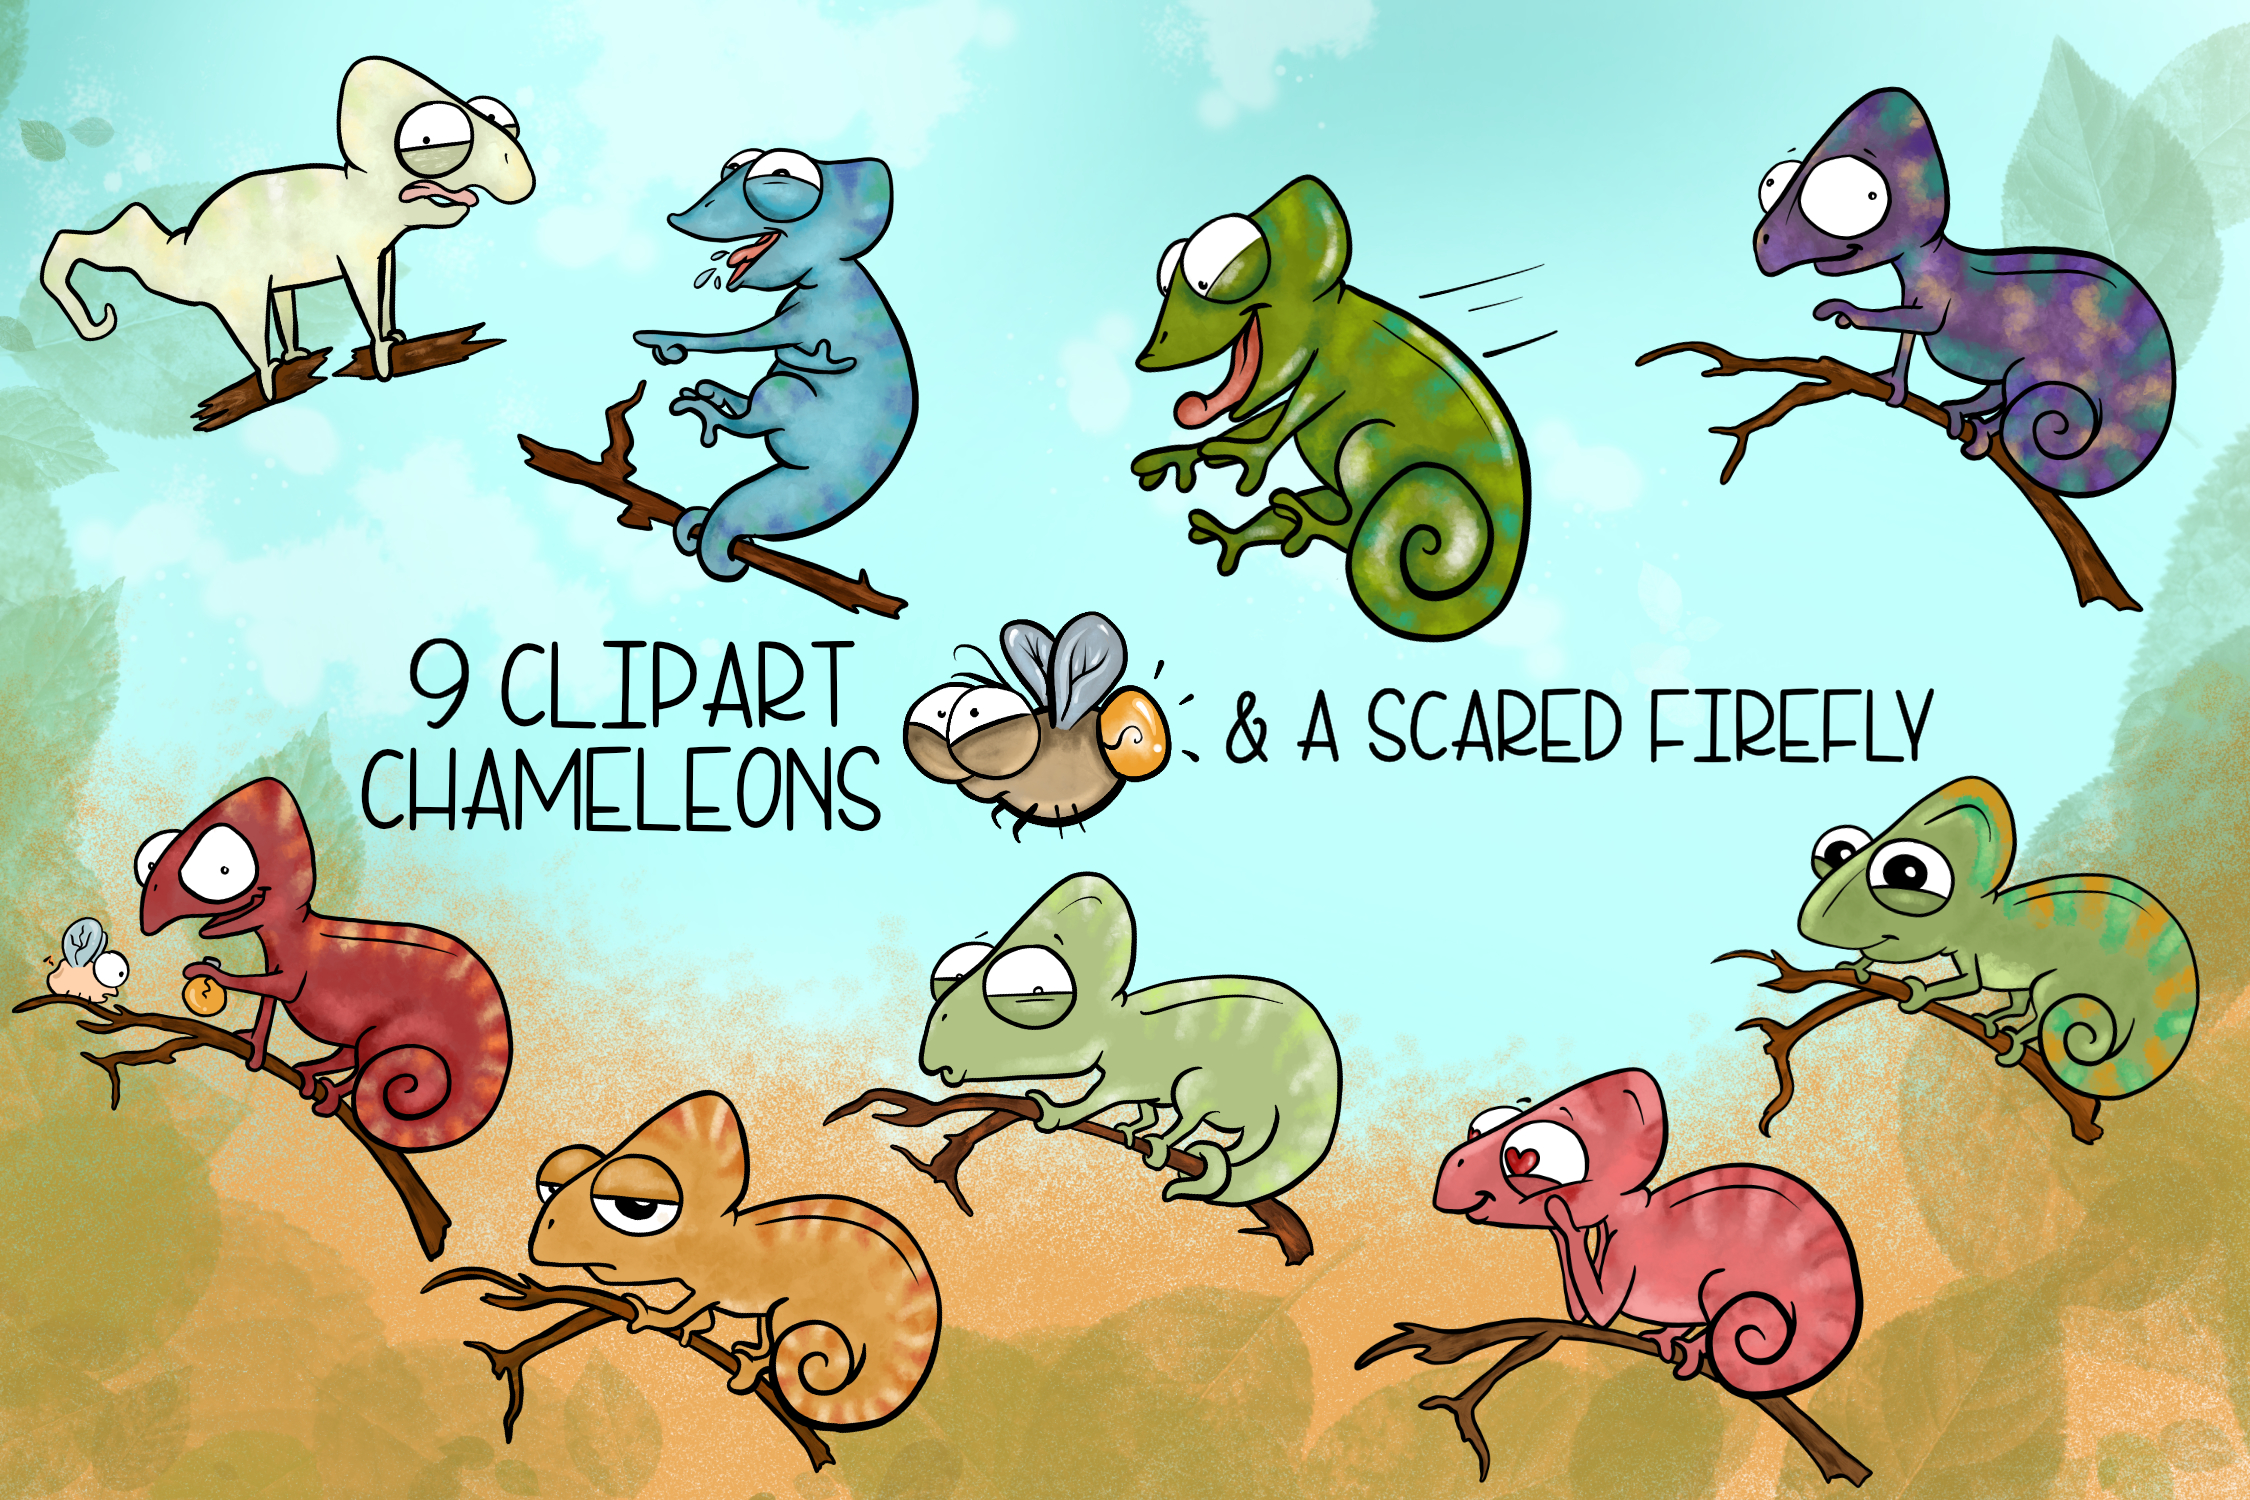 Cute & Crazy Chameleons  Cute Chameleon Clipart   Reptile Cl example image 2